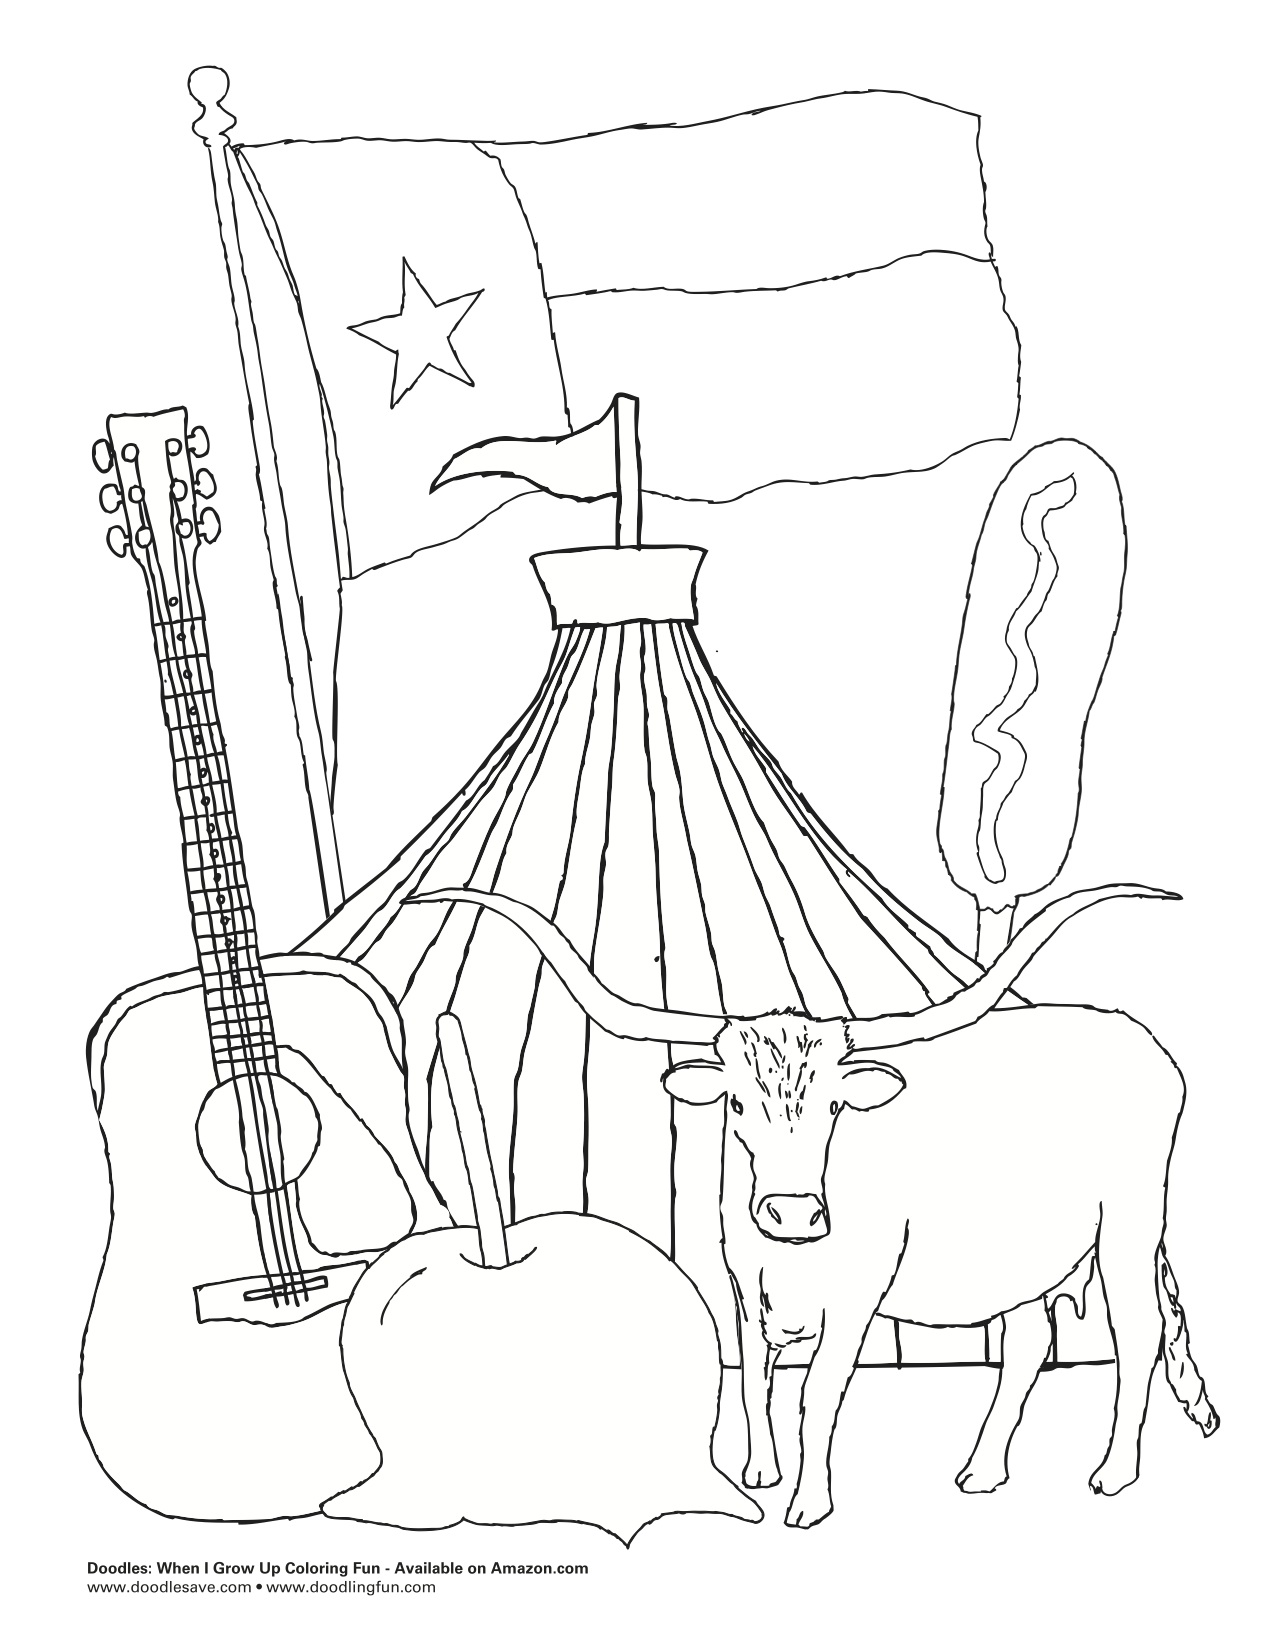 state coloring pages - the state fair of texas doodles ave